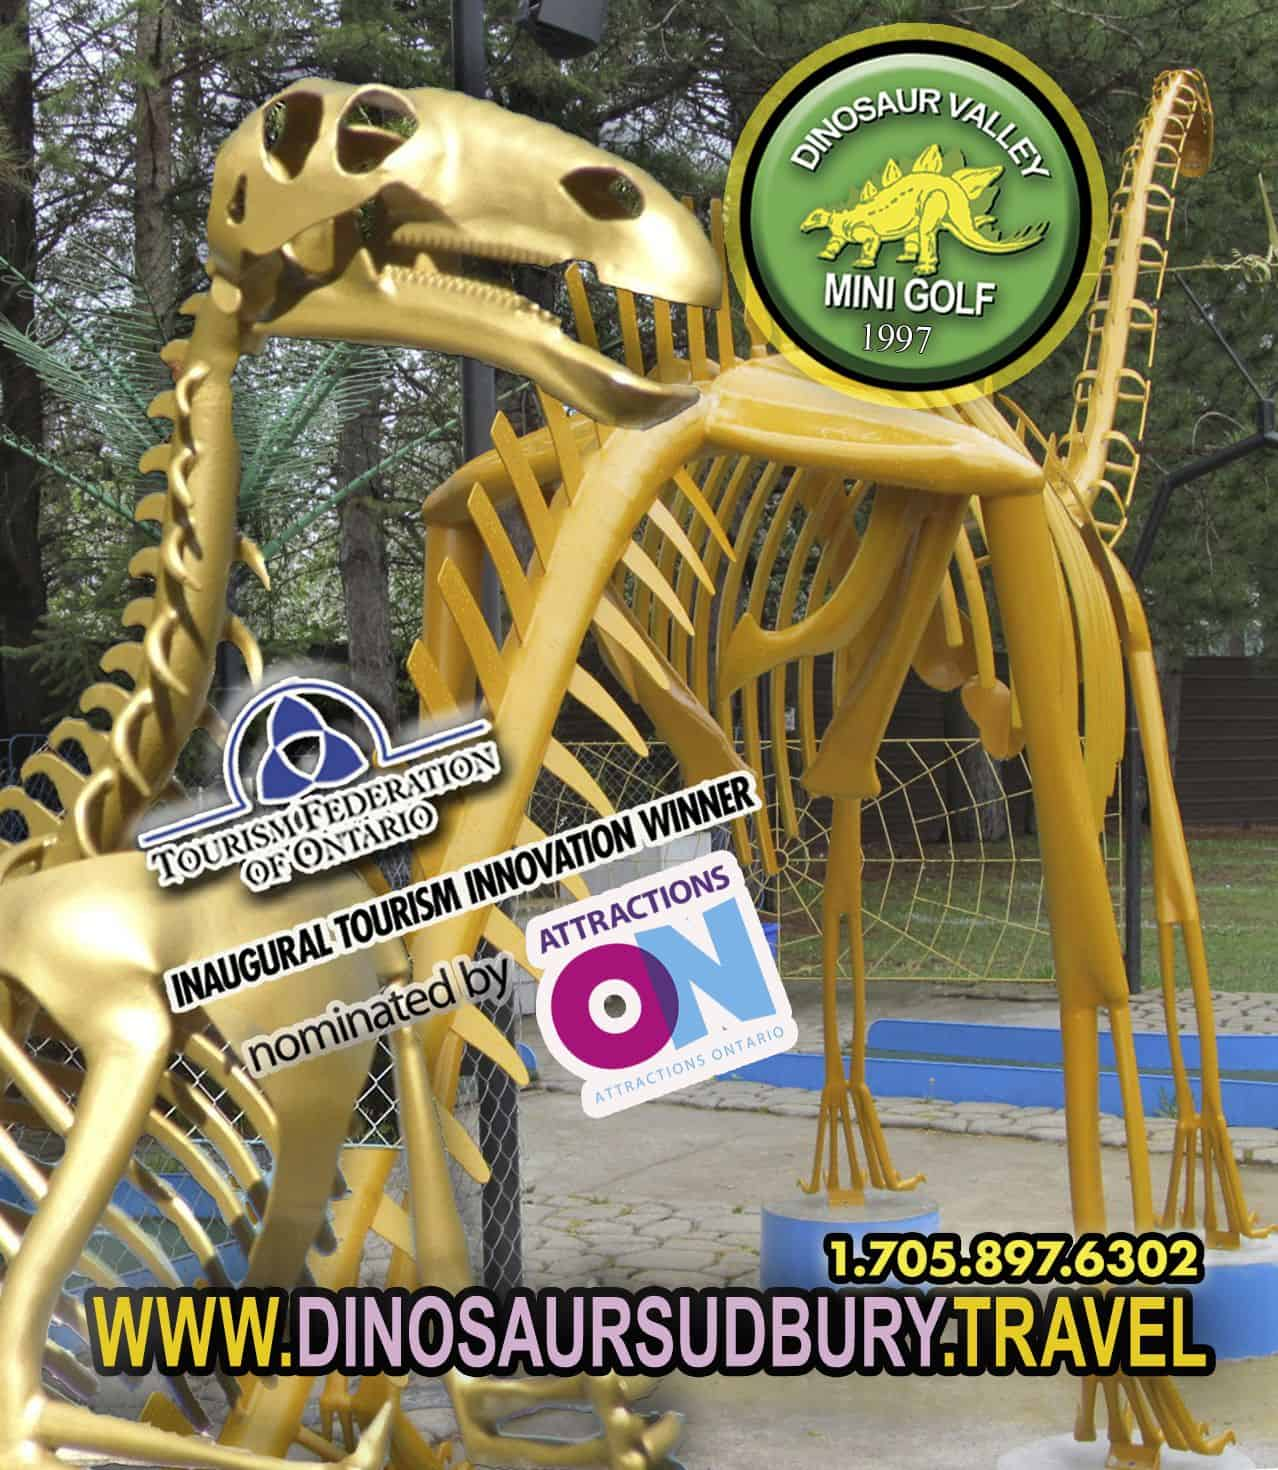 Dinosaur Valley Mini Golf